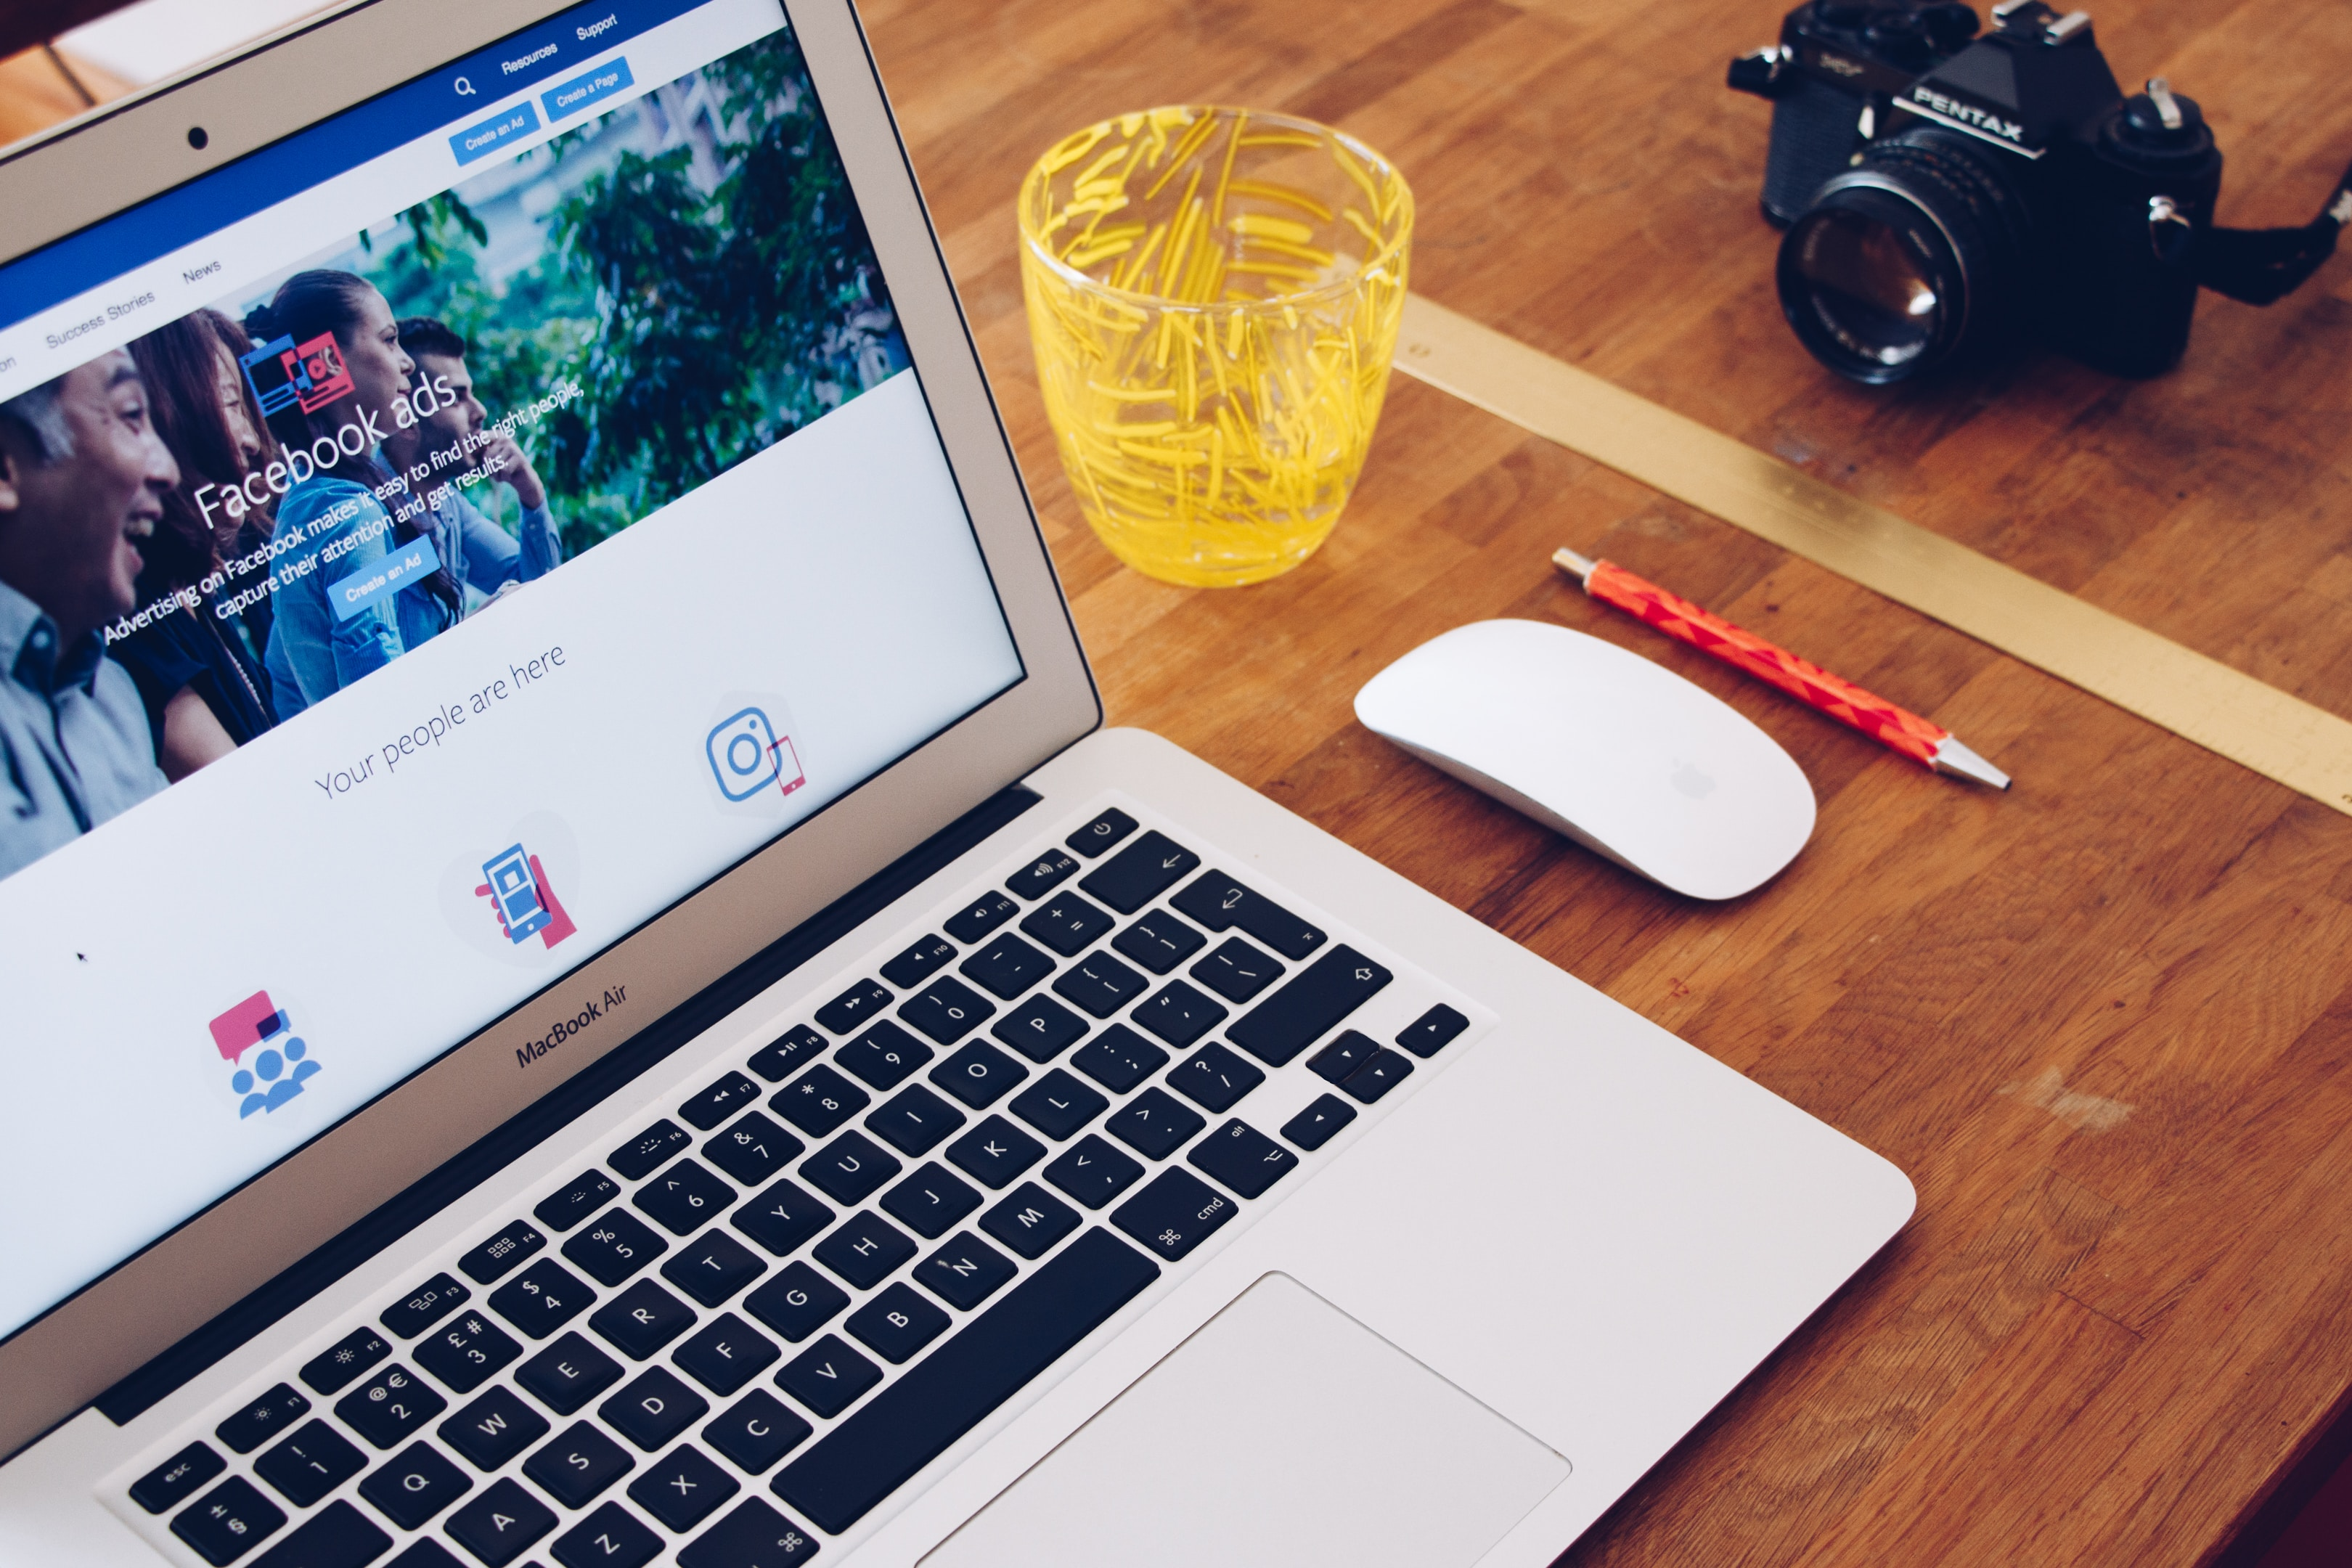 Facebook Ads: A Digital Marketing Tip